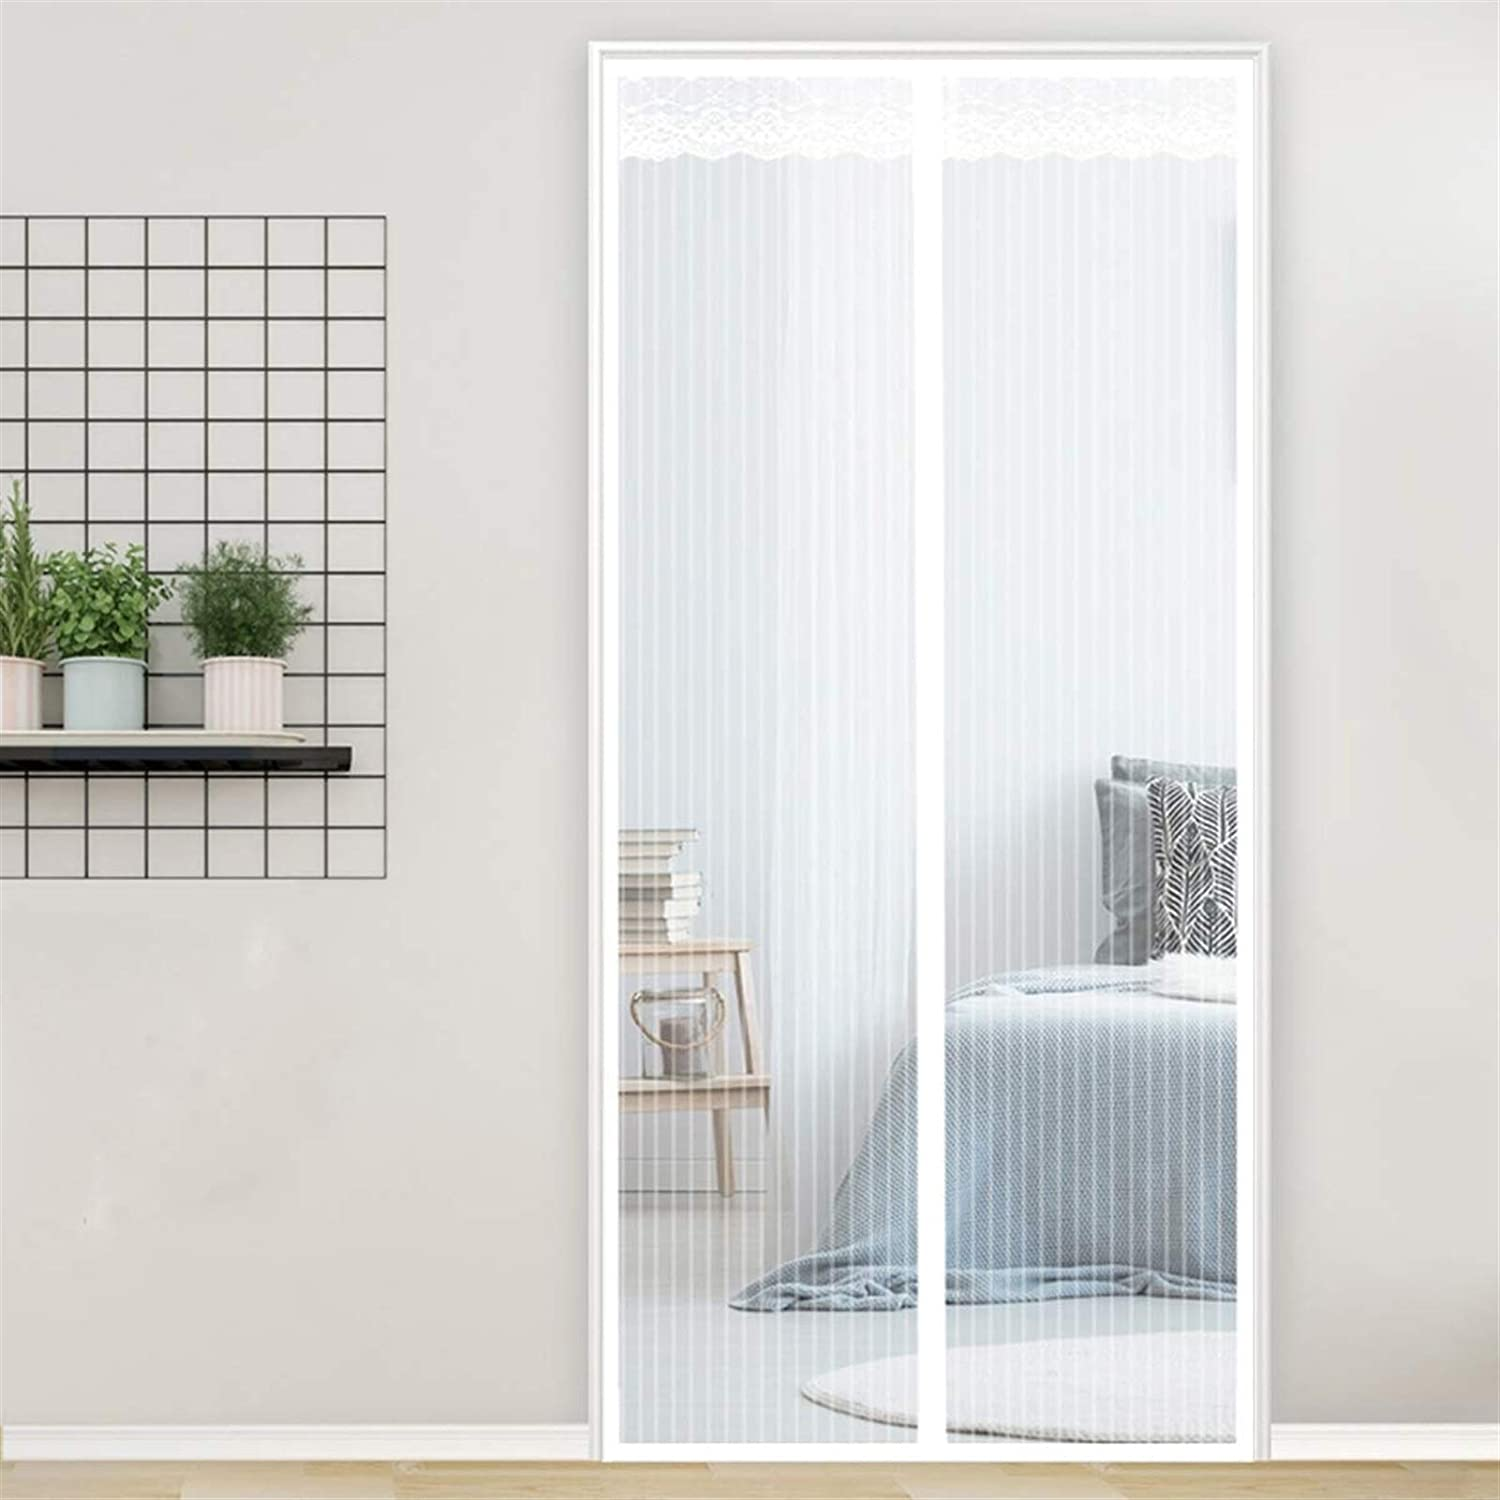 THAIKER Magnetic Fly Insect Screen 93x96inch Omaha Mall Door Ultra-Cheap Deals wi 235x245cm